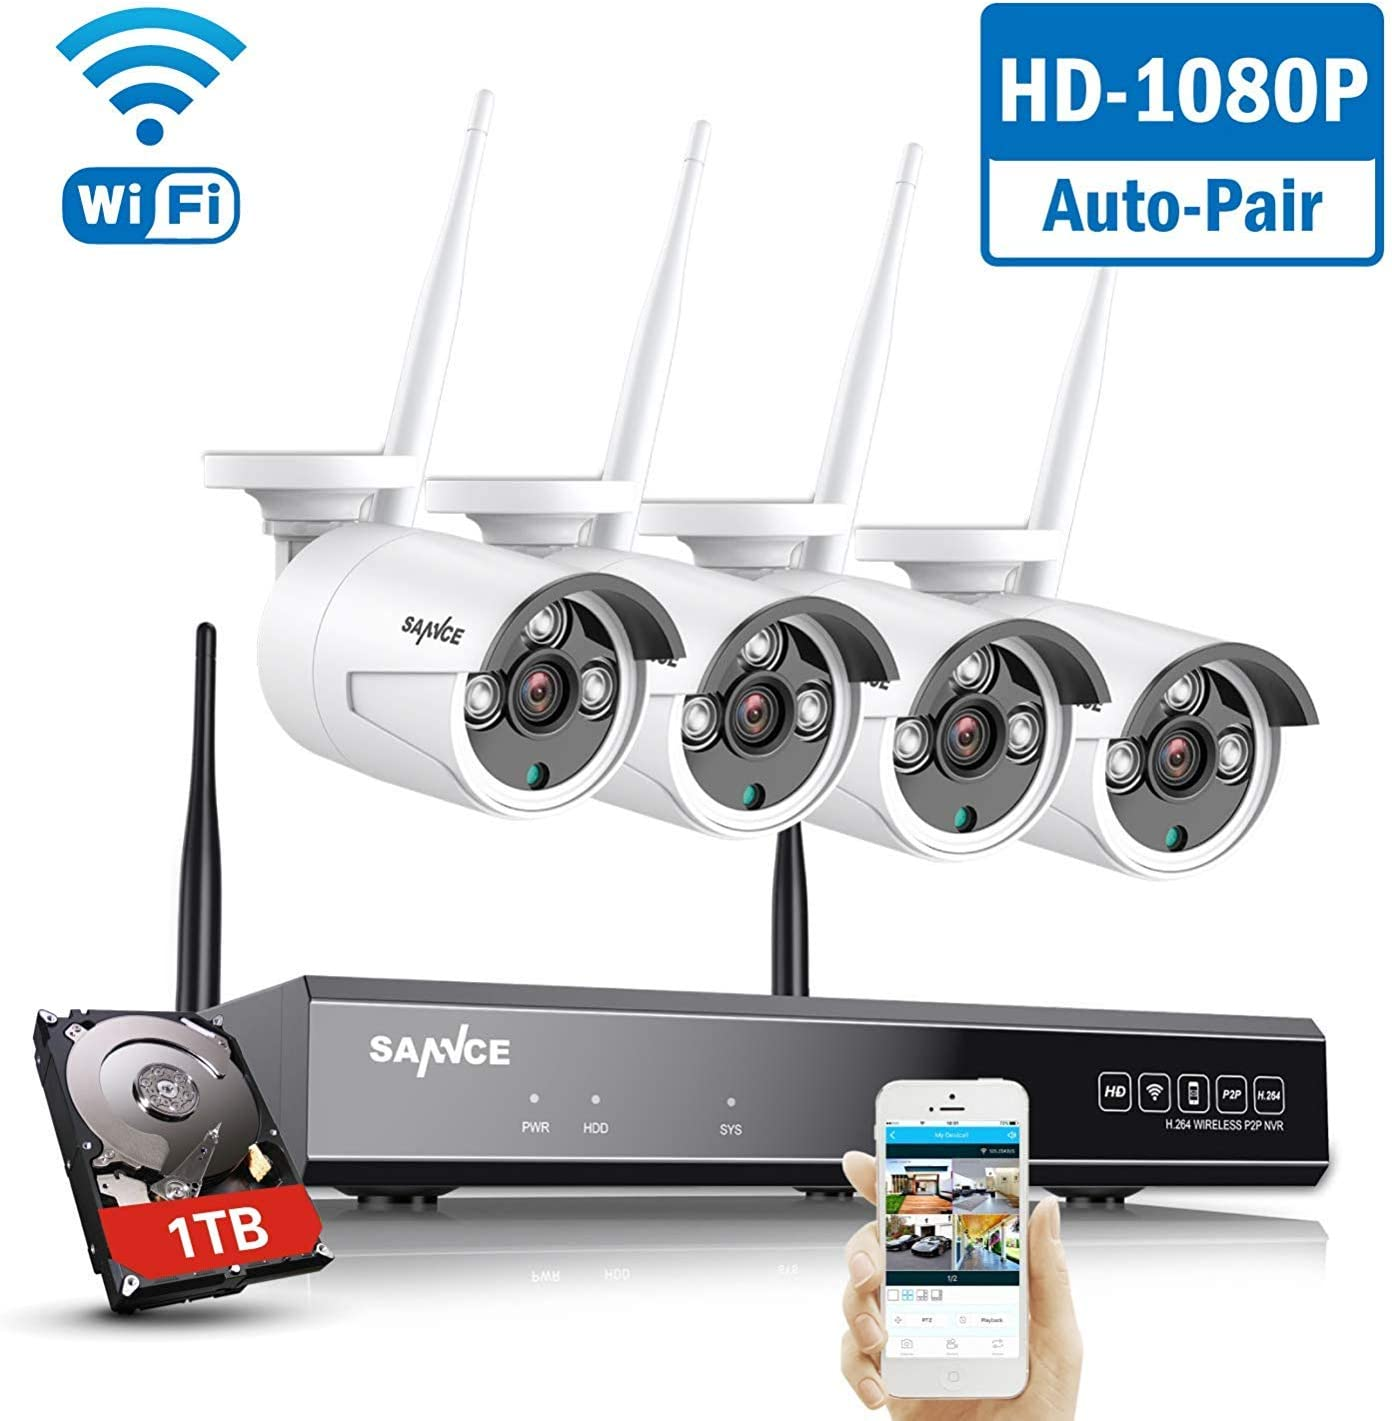 【Expandable 8CH】 Wireless Security Camera System with 1TB Hard Drive, SANNCE 8 Channel NVR 4Pcs 1080P 2.0MP WiFi IP Security Surveillance Cameras Home Outdoor, Easy Remote View, 100FT Night Vision 71uyn7v1ECL